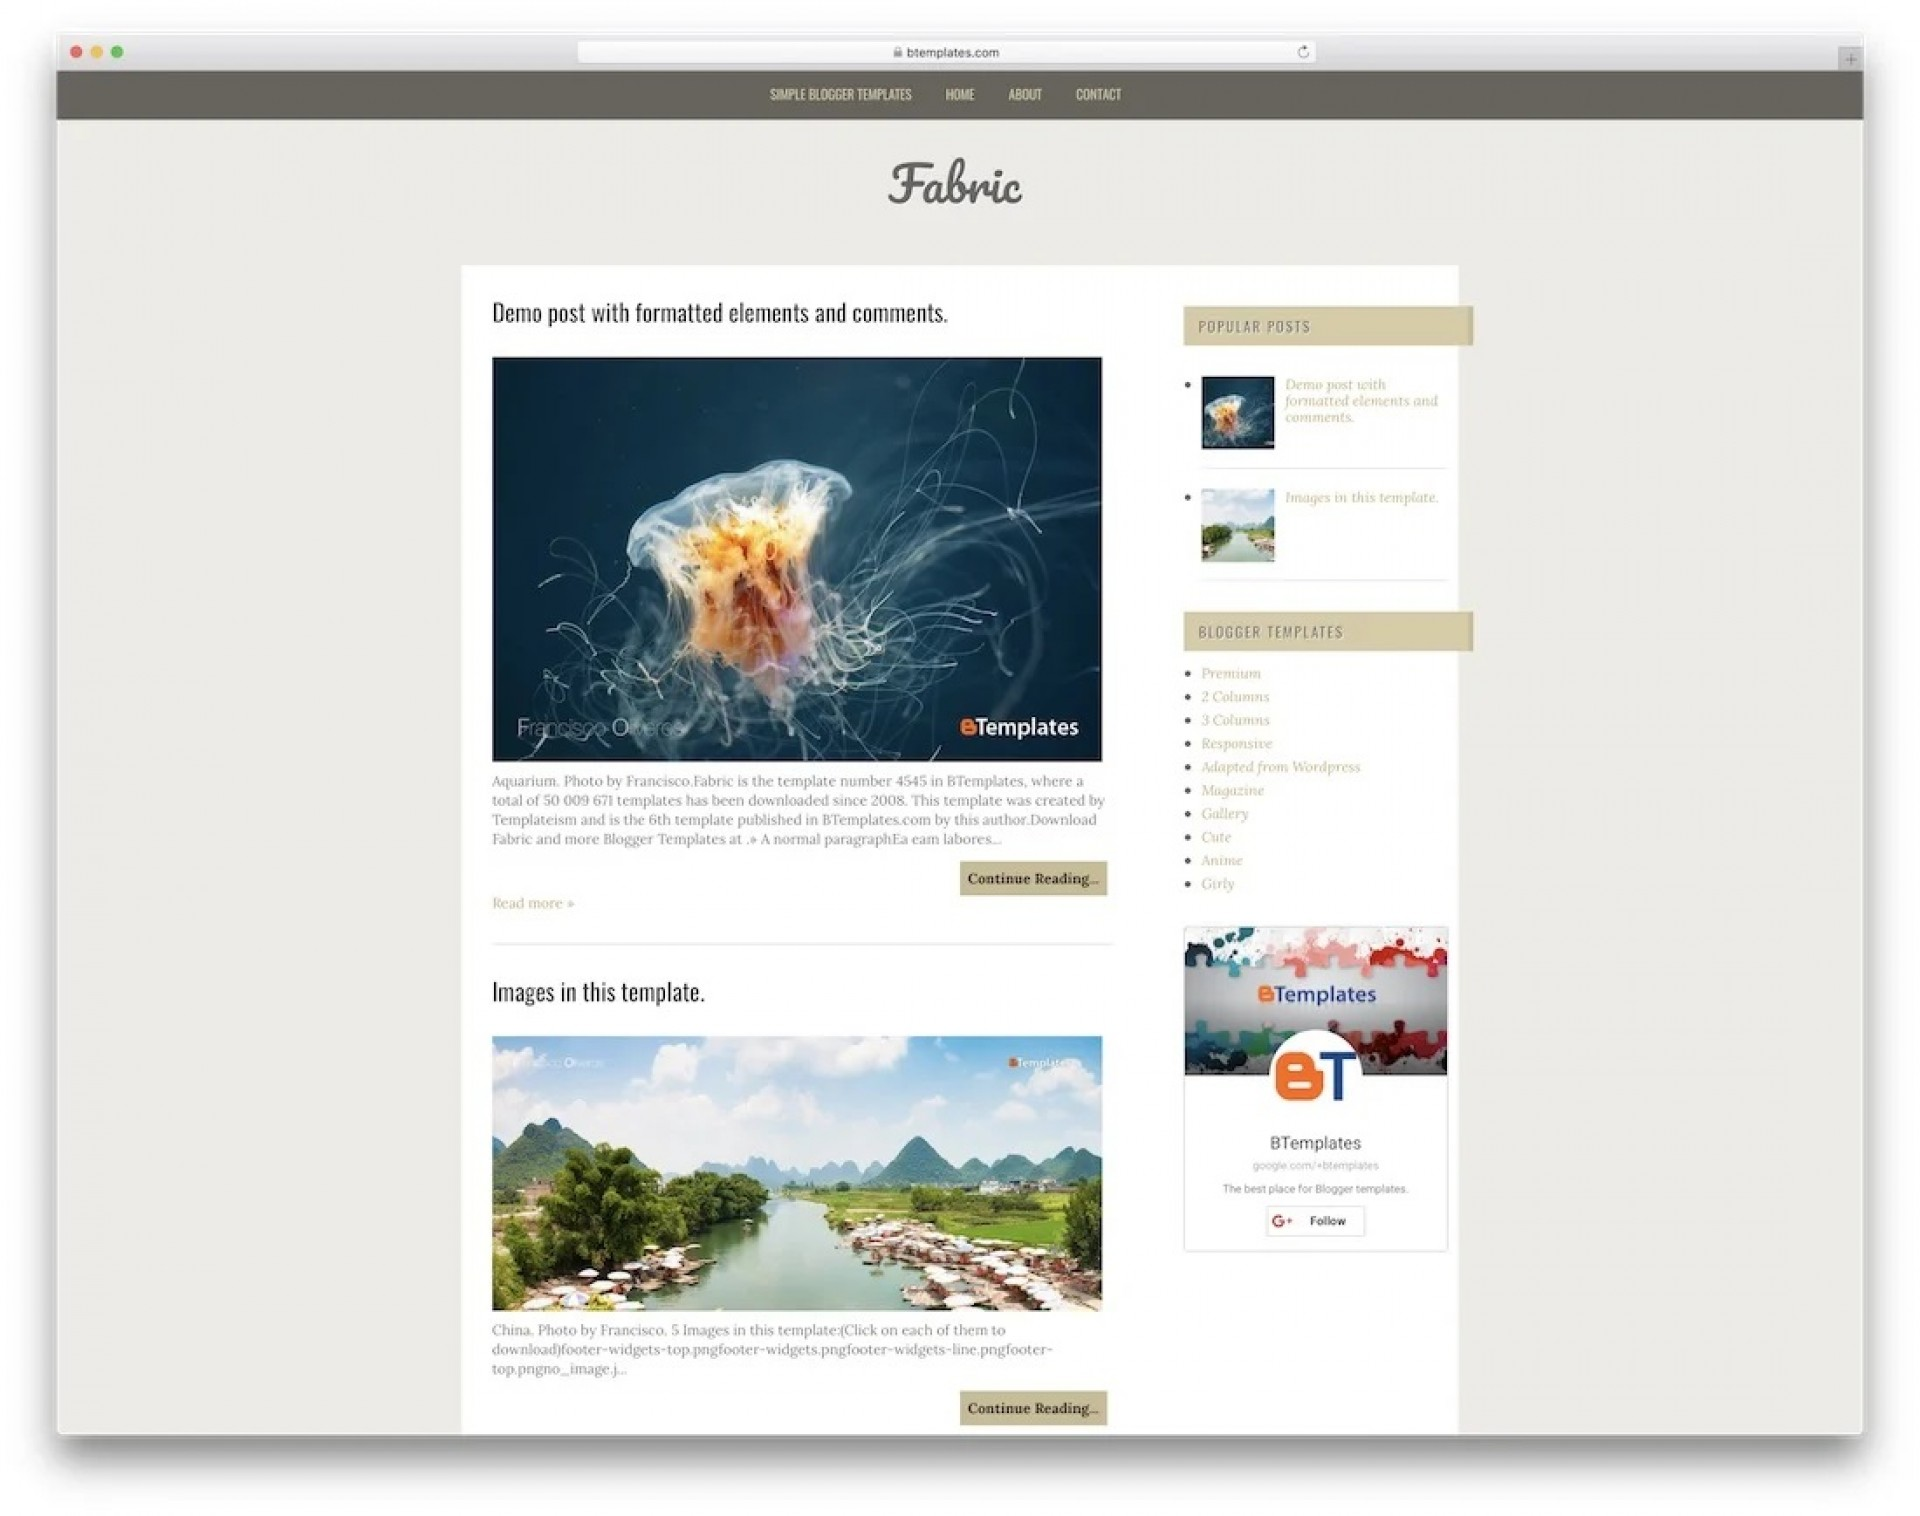 Fabric Free Wordpres Blogger Template Idea  Templates Best Theme For Blog 2018 2019 Download1920